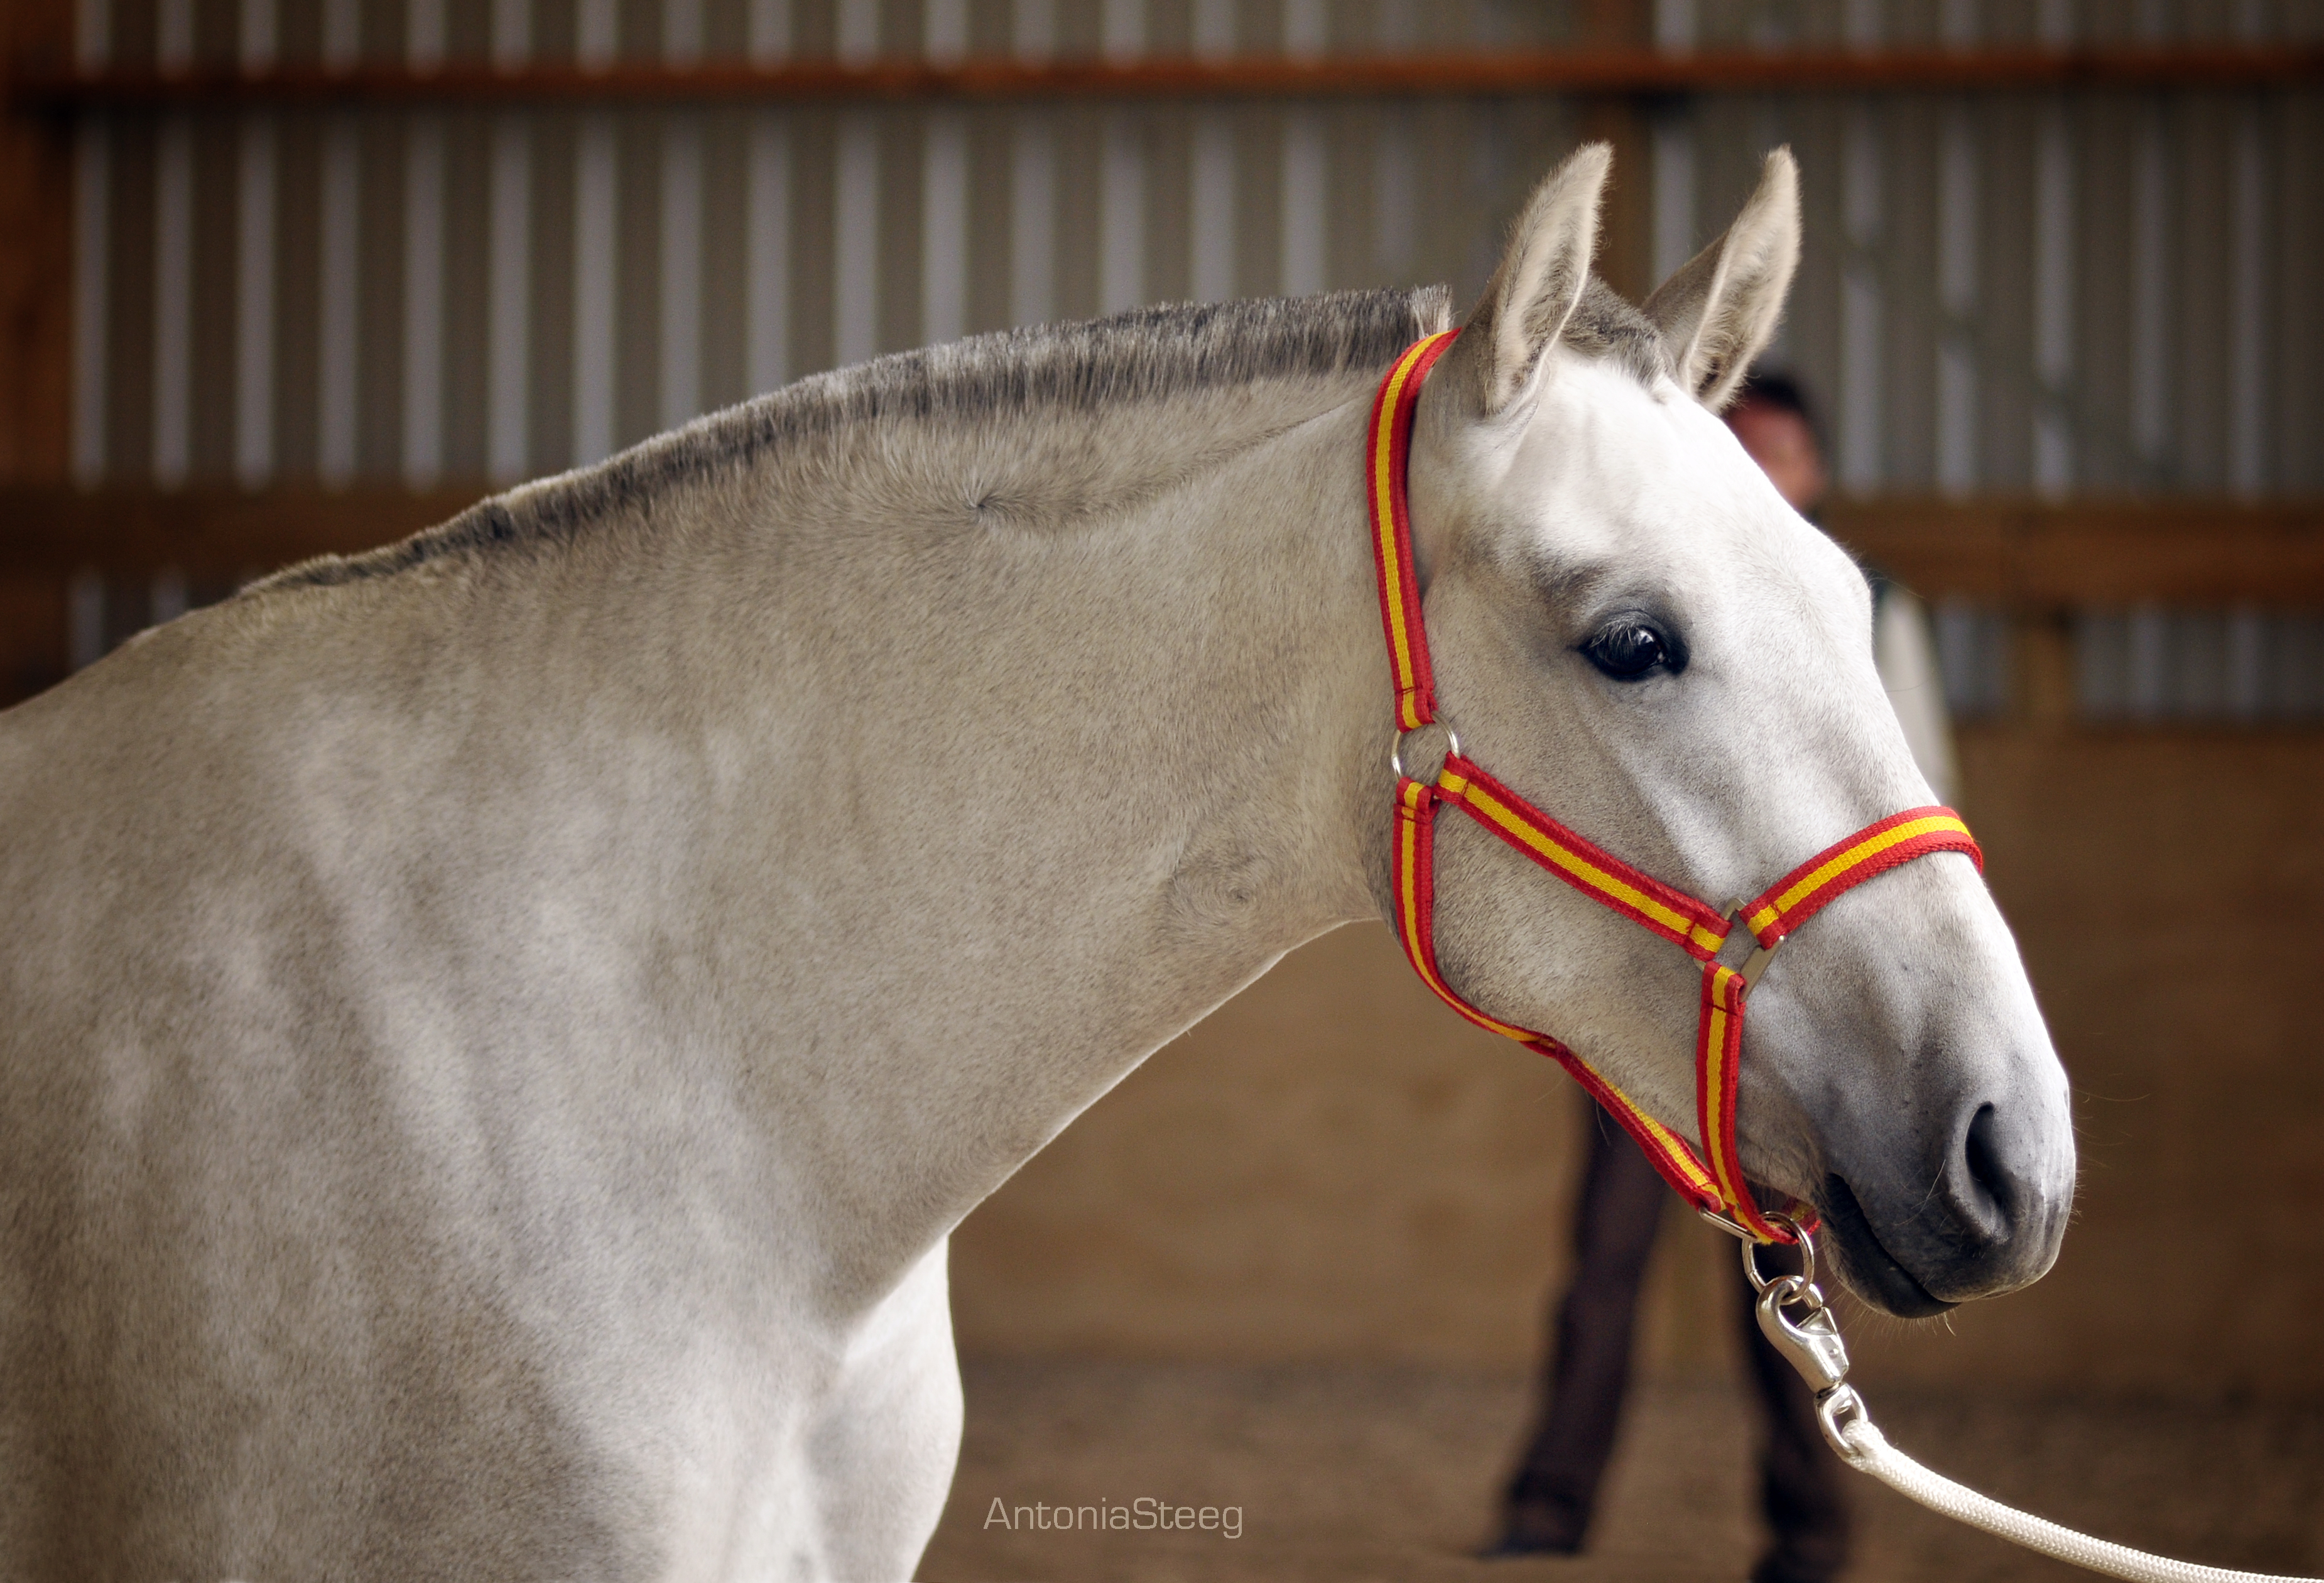 Hanna Mistica, 2 year old filly